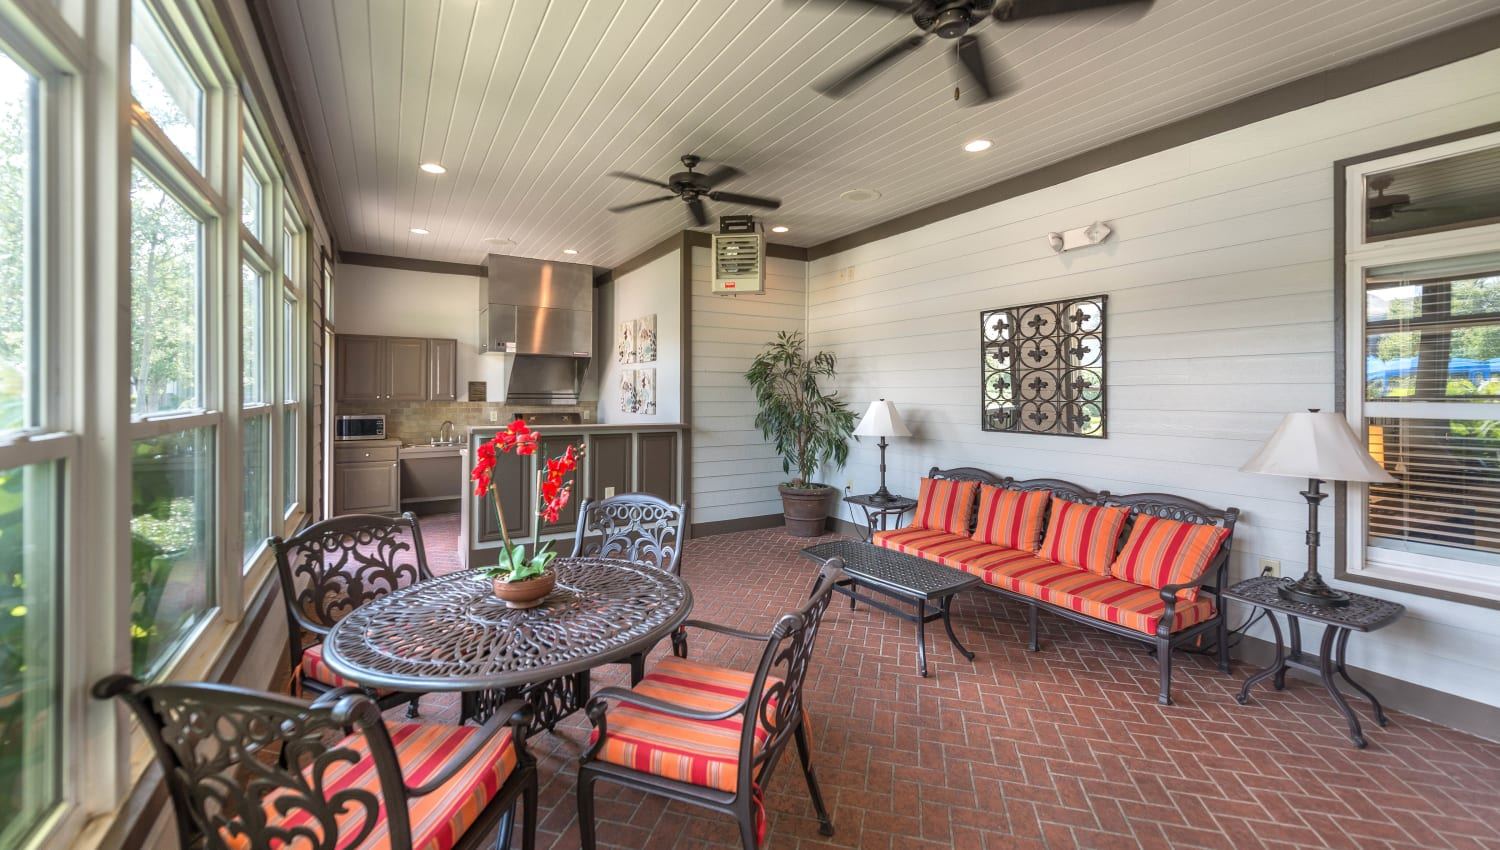 Sunroom at Olympus Hillwood in Murfreesboro, Tennessee